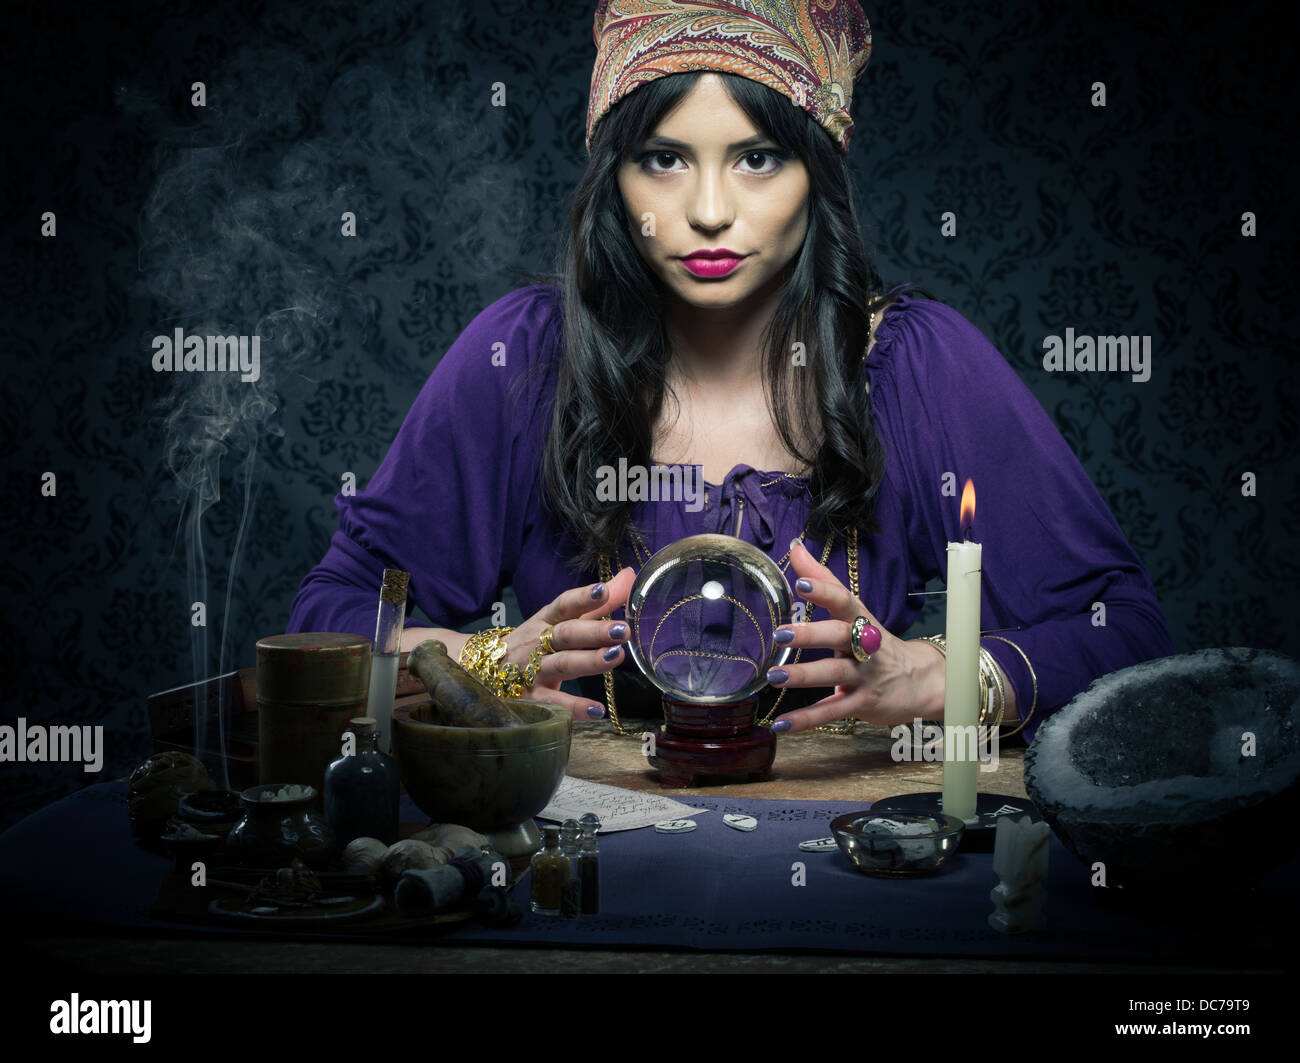 Fortune teller / mystic with crystal ball and tarrot cards